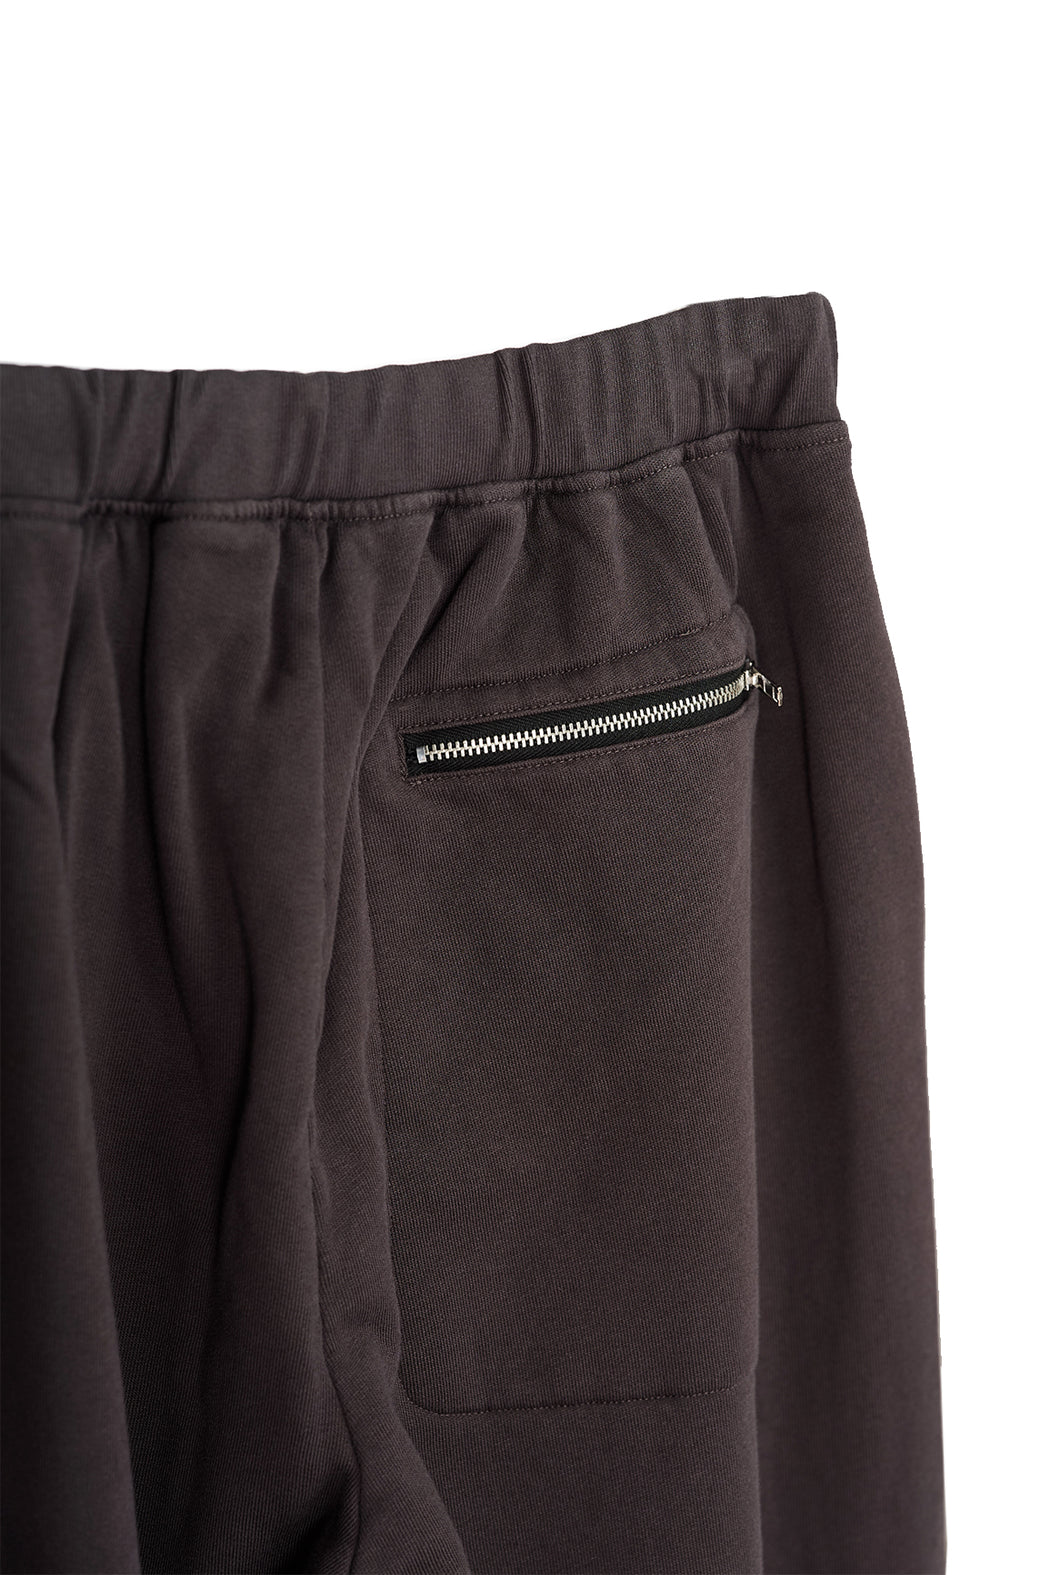 Column Sweatpants - Black/Green